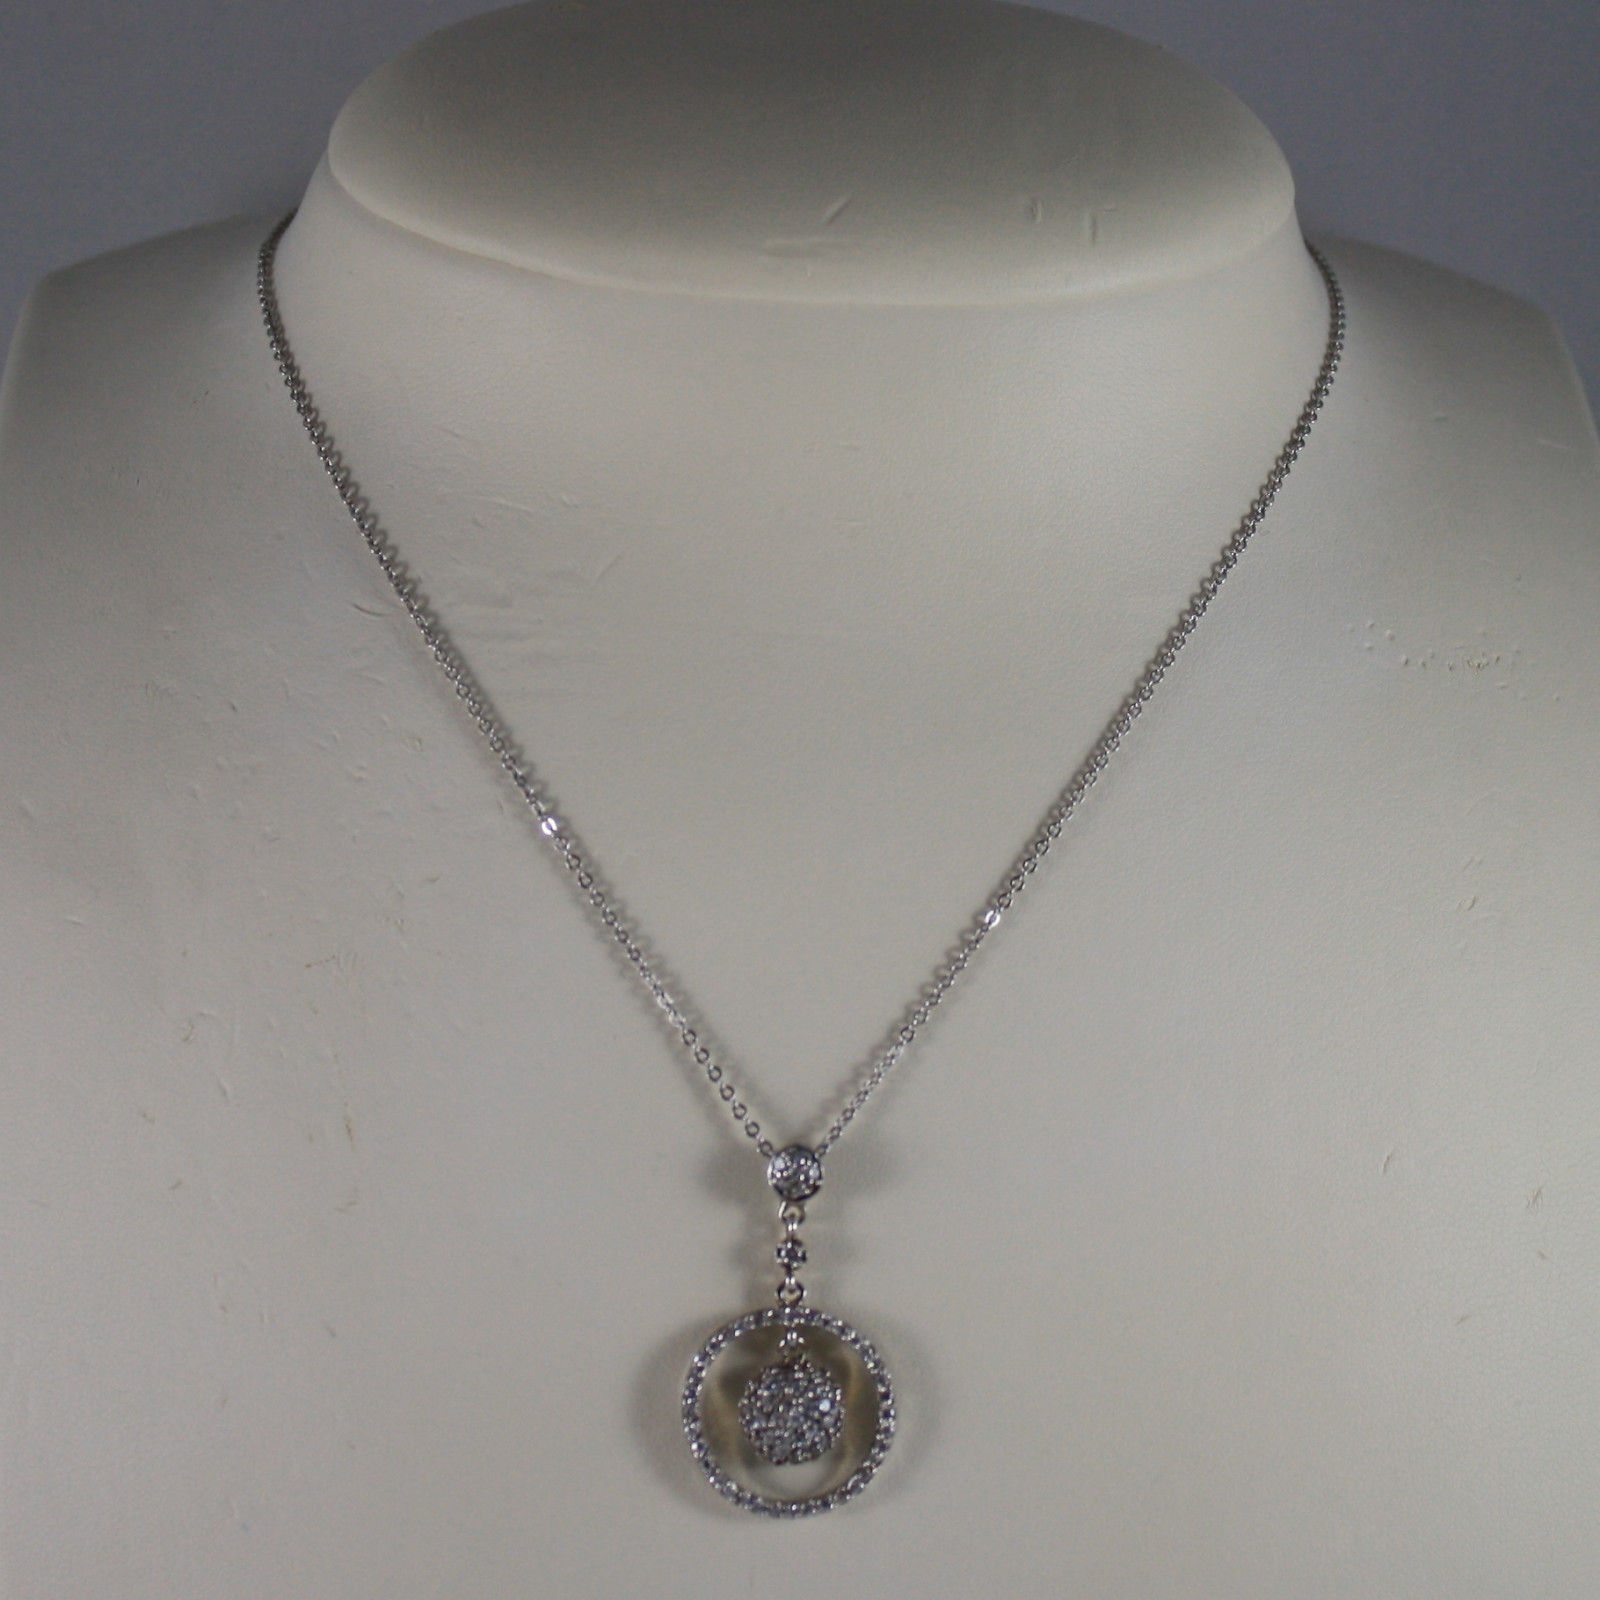 .925 SILVER RHODIUM NECKLACE WITH ZIRCONIA, ROUND MESH  LENGTH 17,91